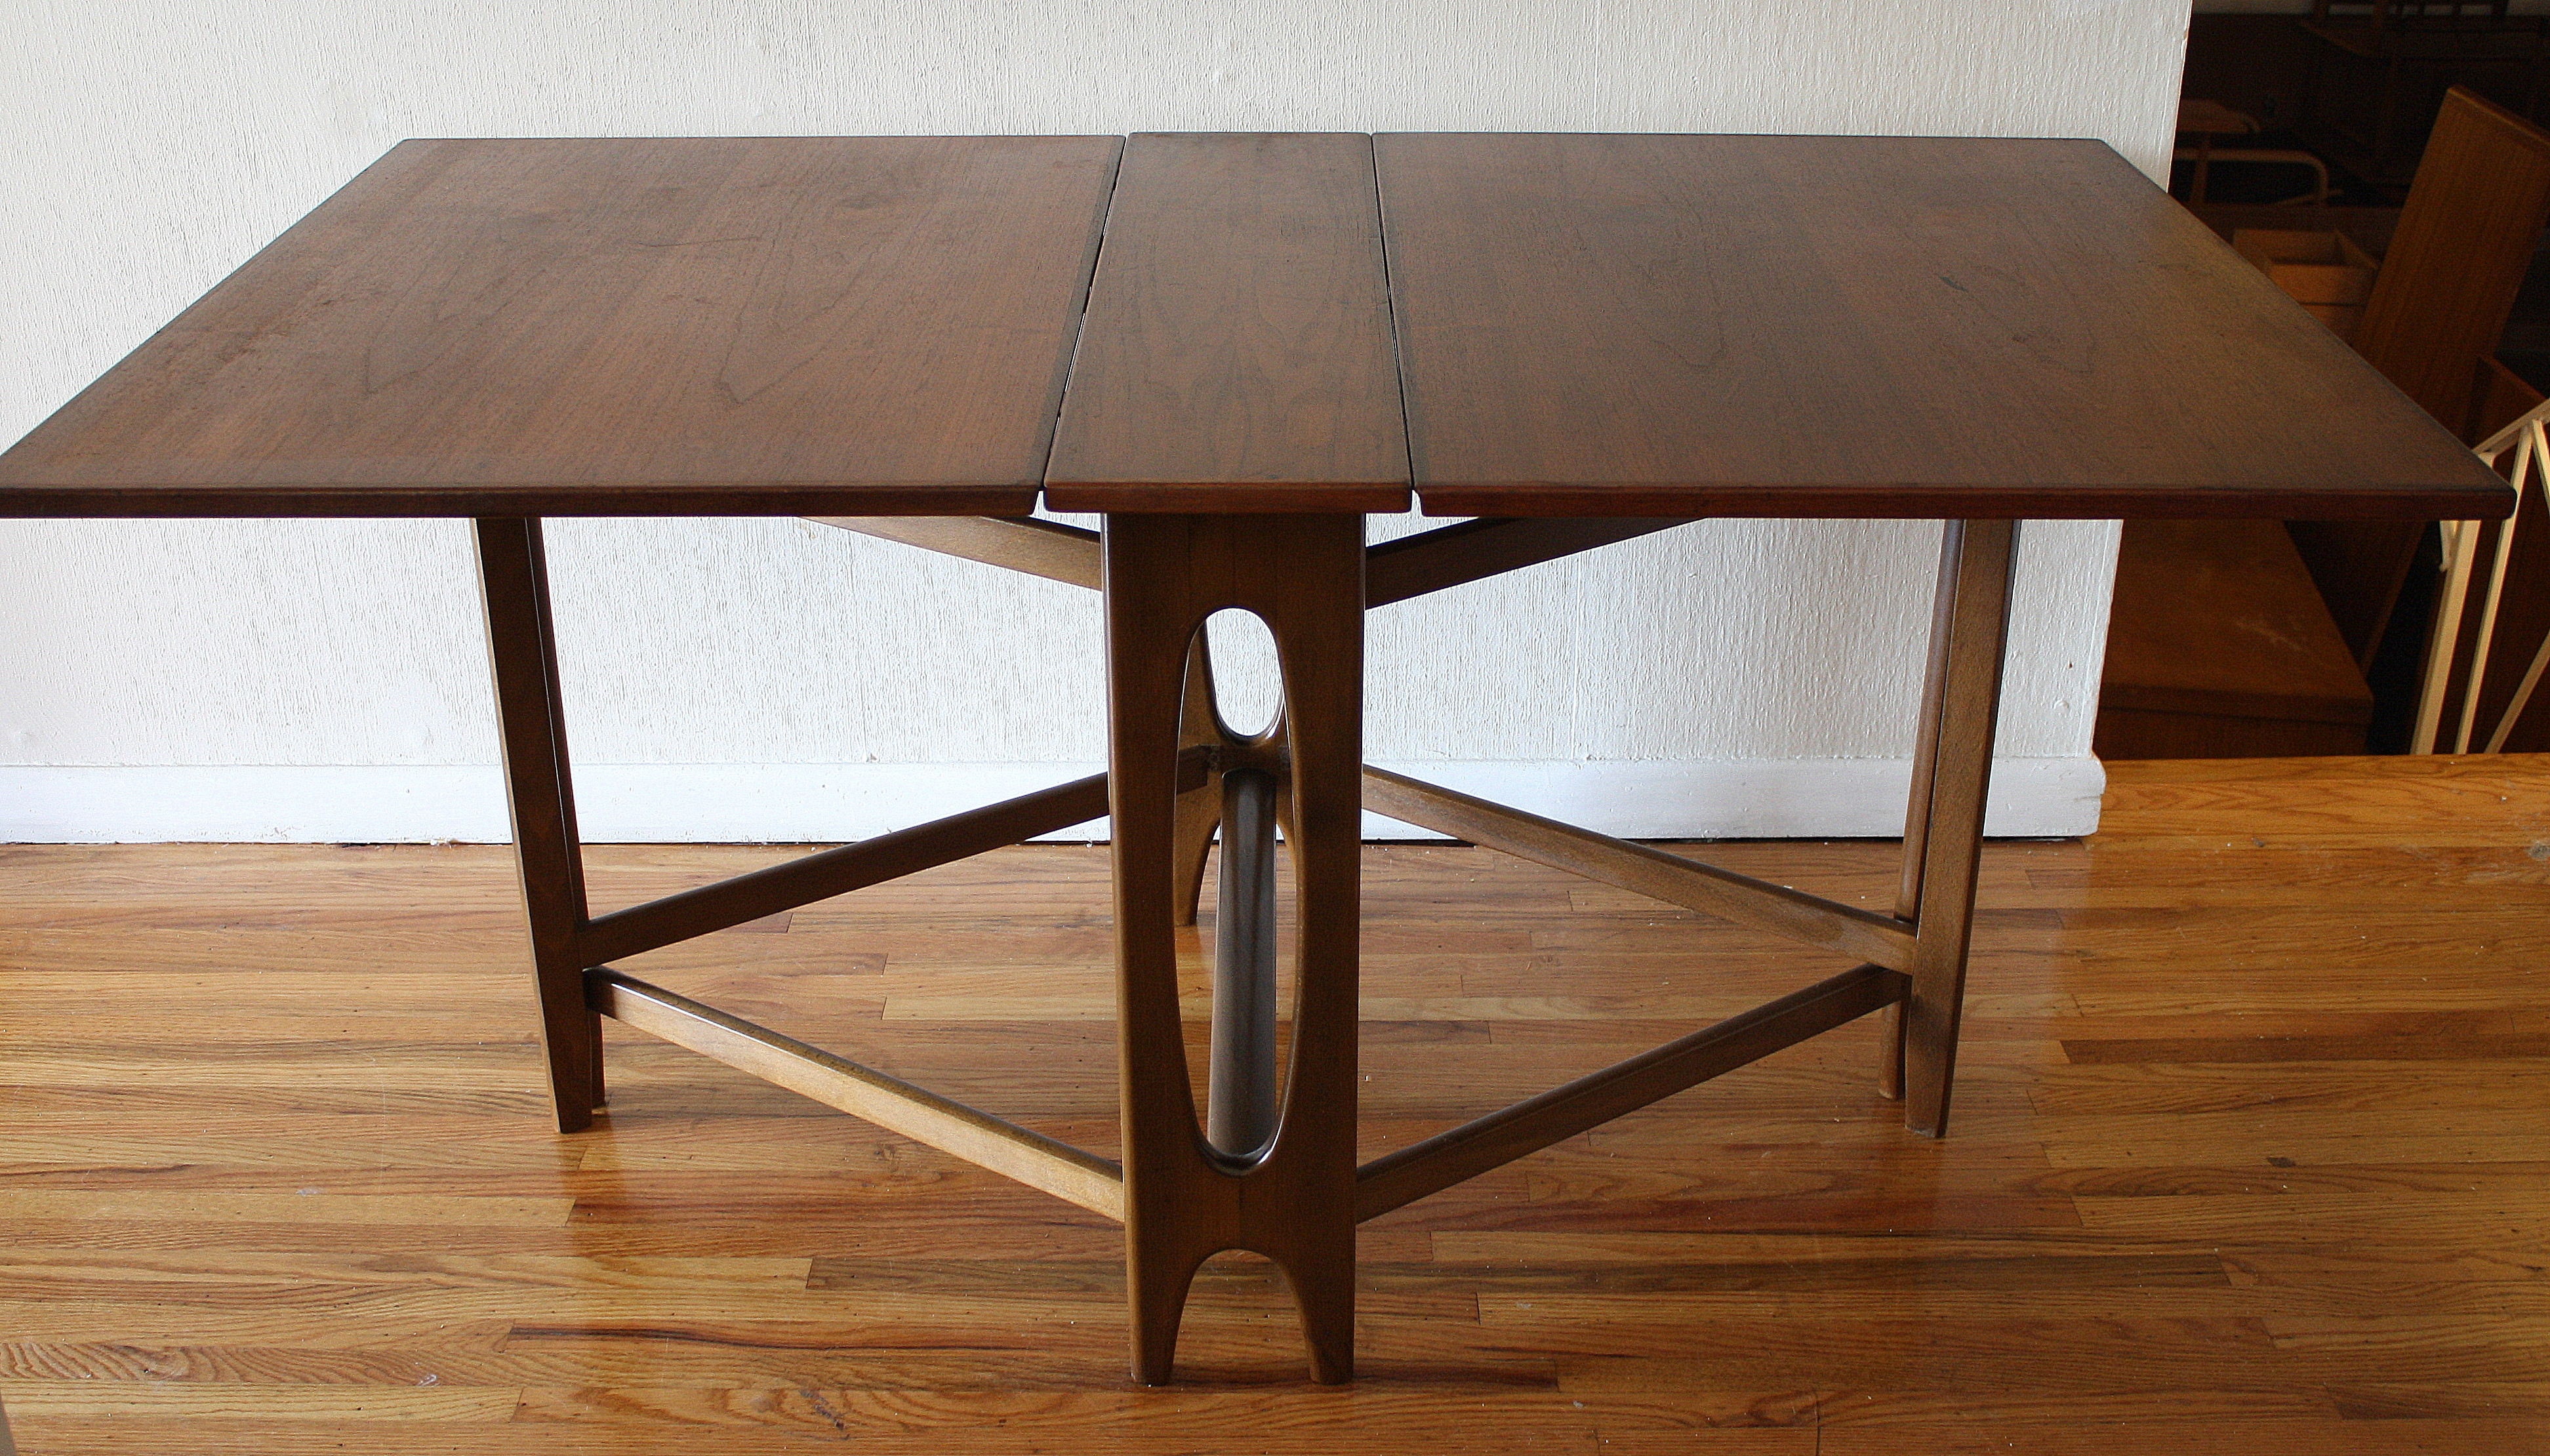 Best ideas about Folding Dining Table . Save or Pin Danish folding dining table 2 Now.